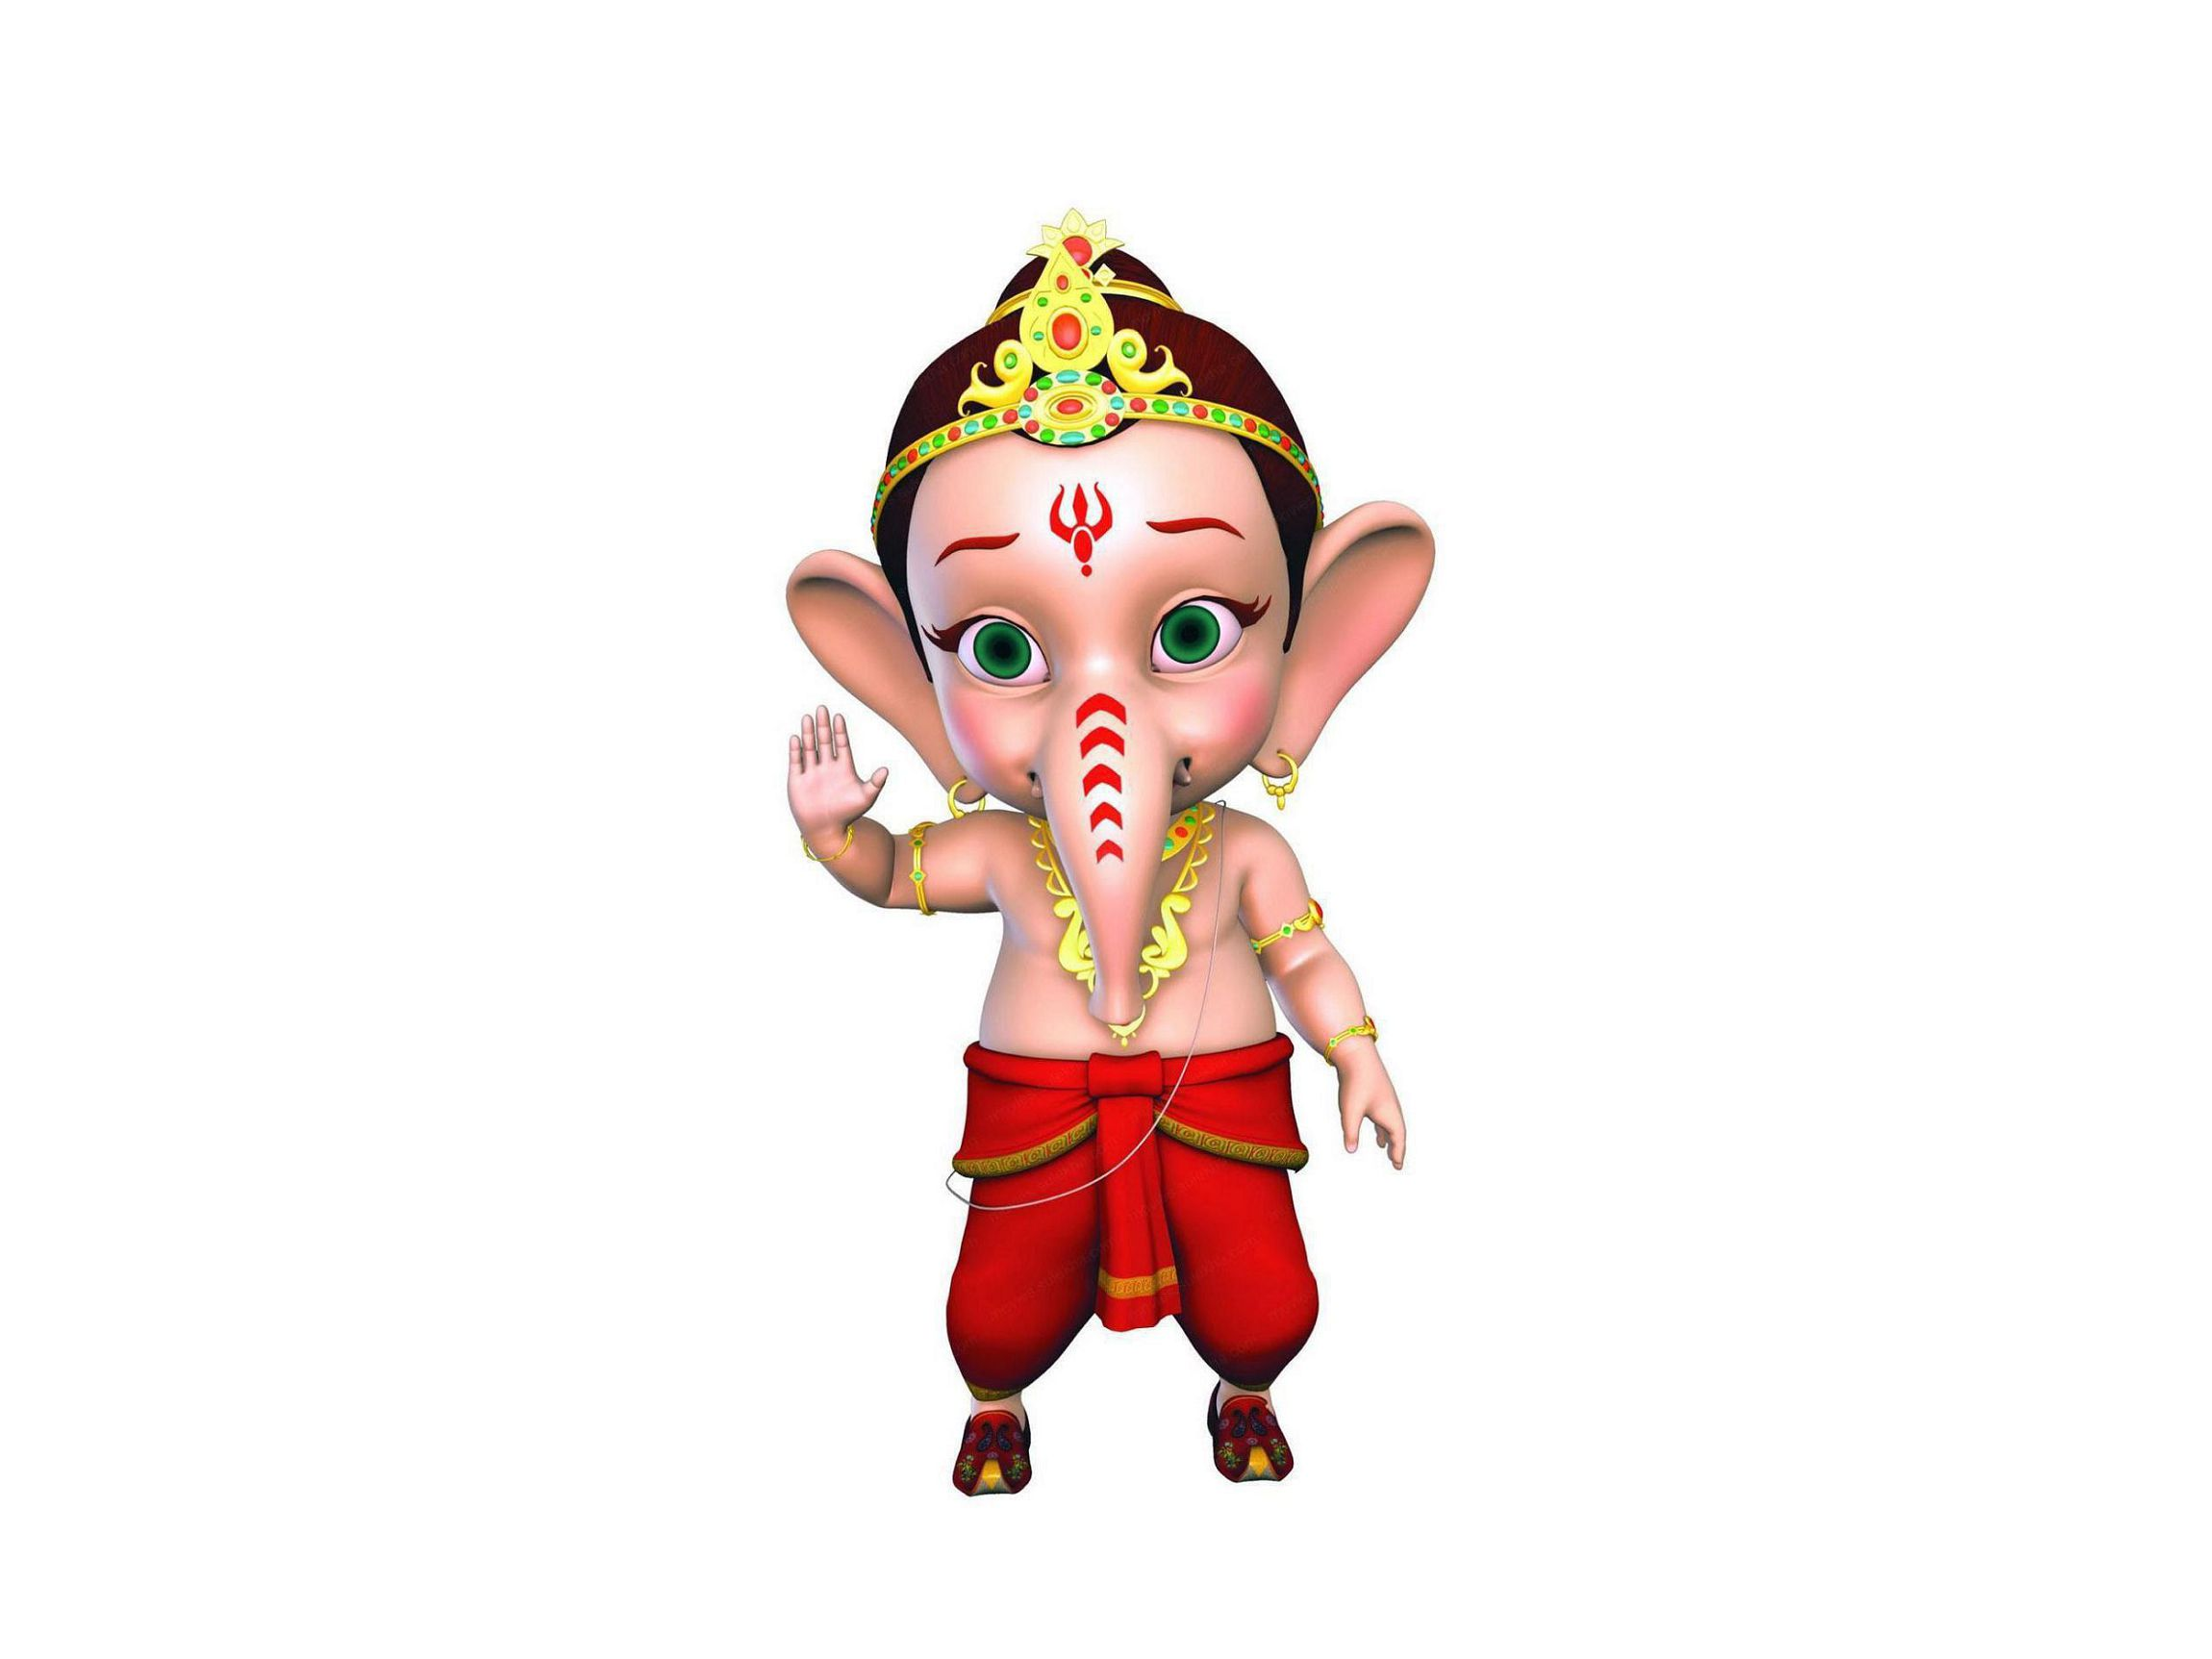 Bal Ganesh Wallpaper Pack